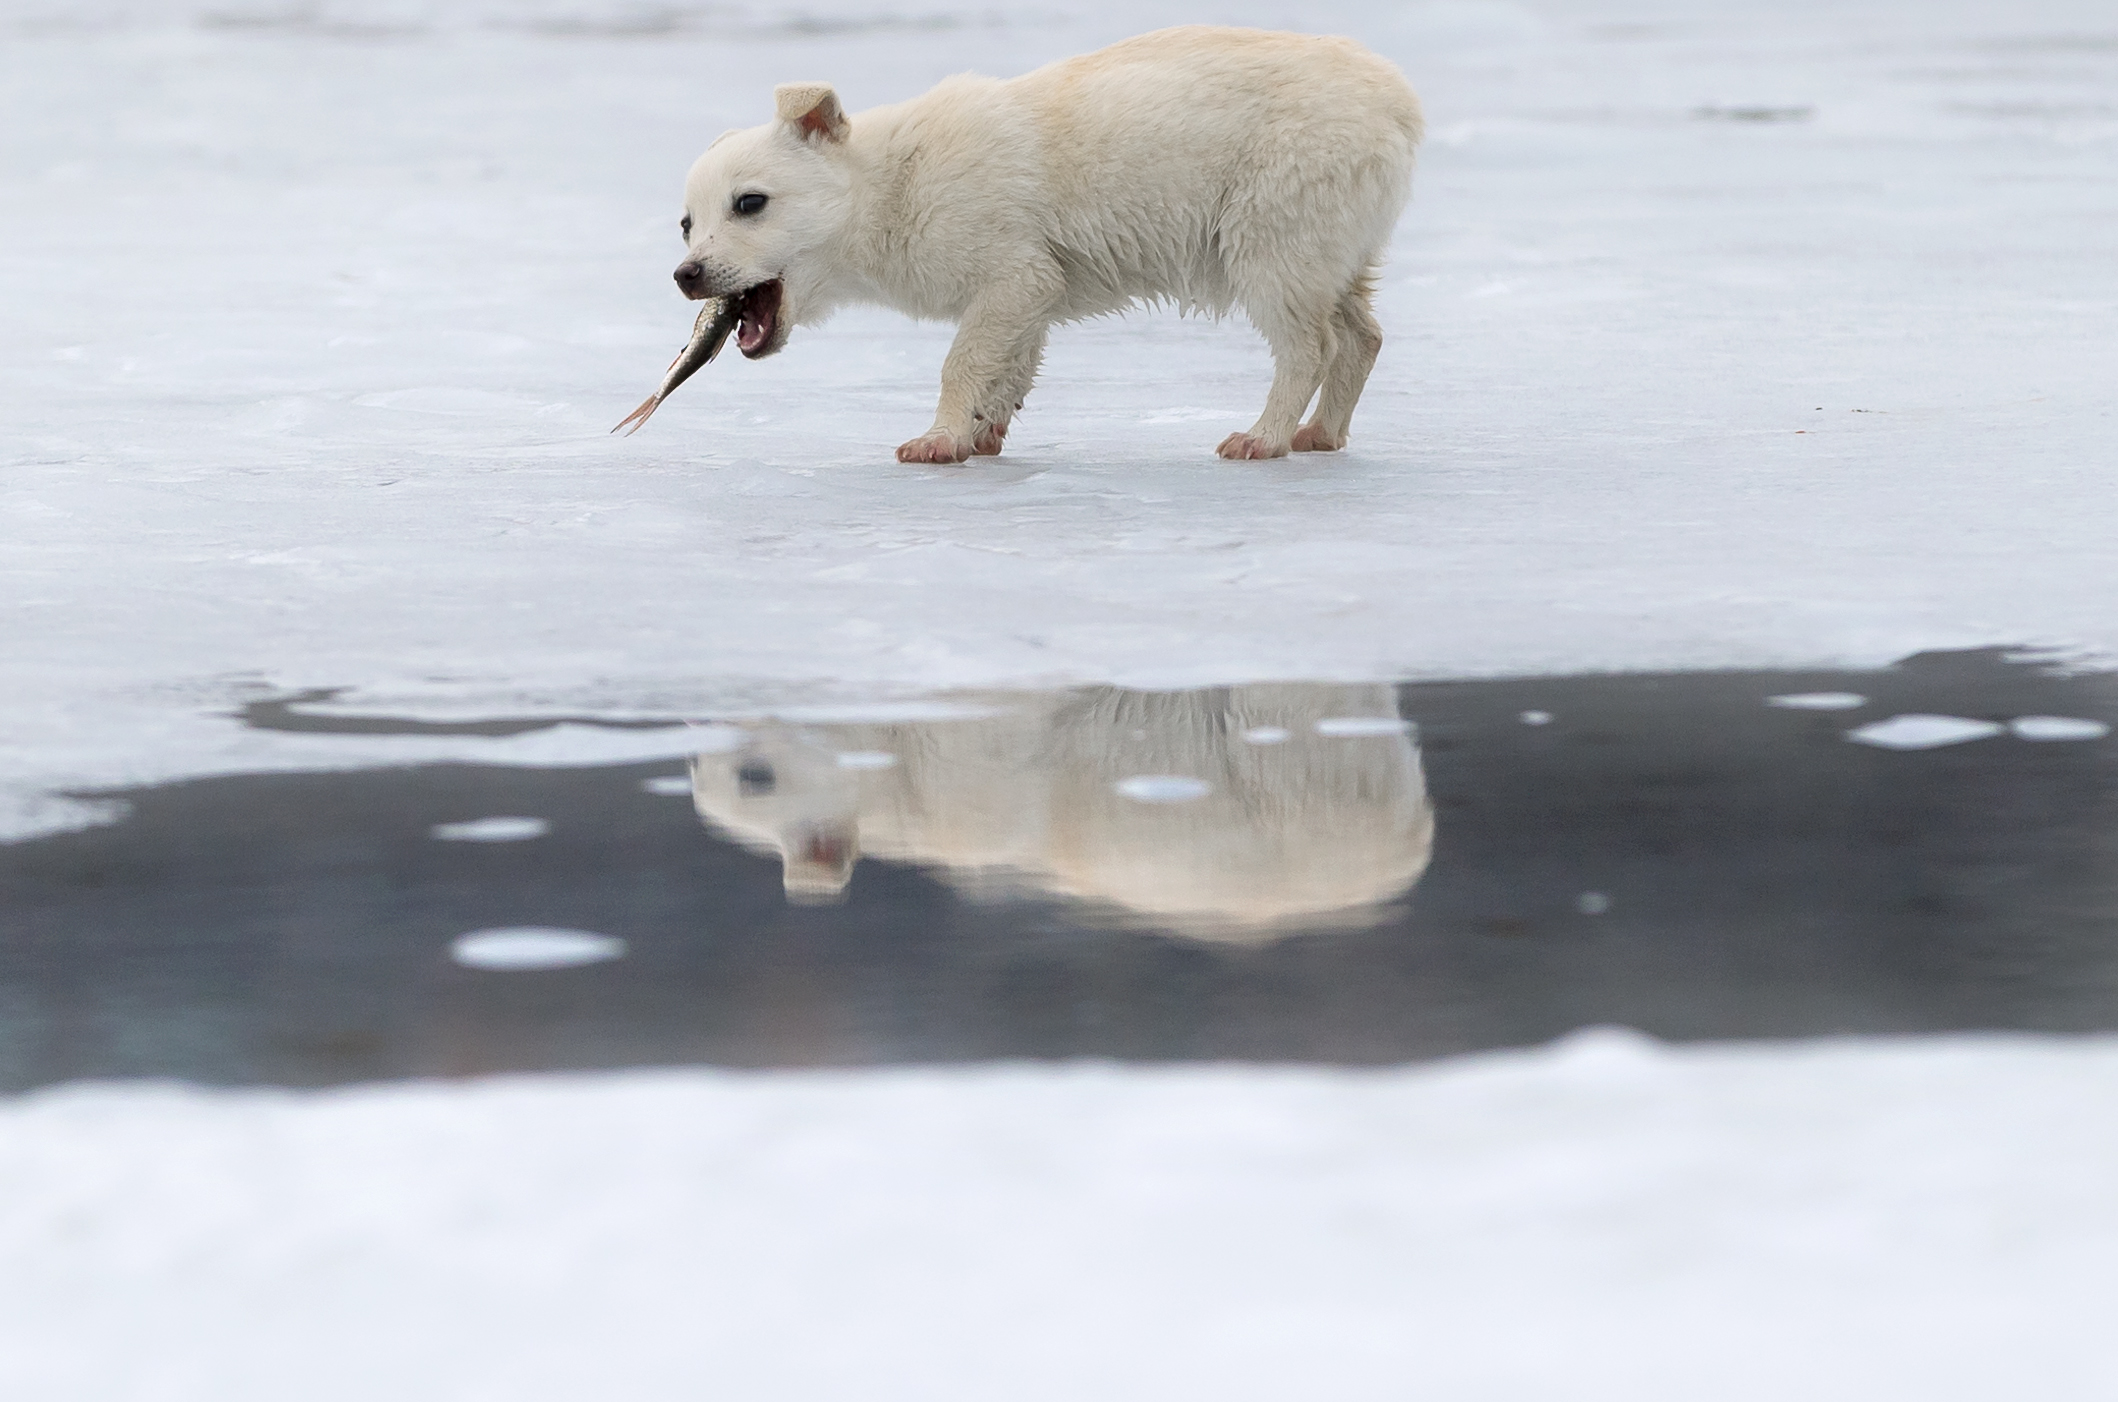 Слайд 57 из 67: A small dog is reflected in a puddle formed by melting ice while eating a fish it snatched from a fisherman on a lake in Cimiseni, Moldova, Friday, Jan. 29, 2016. Moldovans took advantage of the little time left before the ice becomes too thin, due to wa